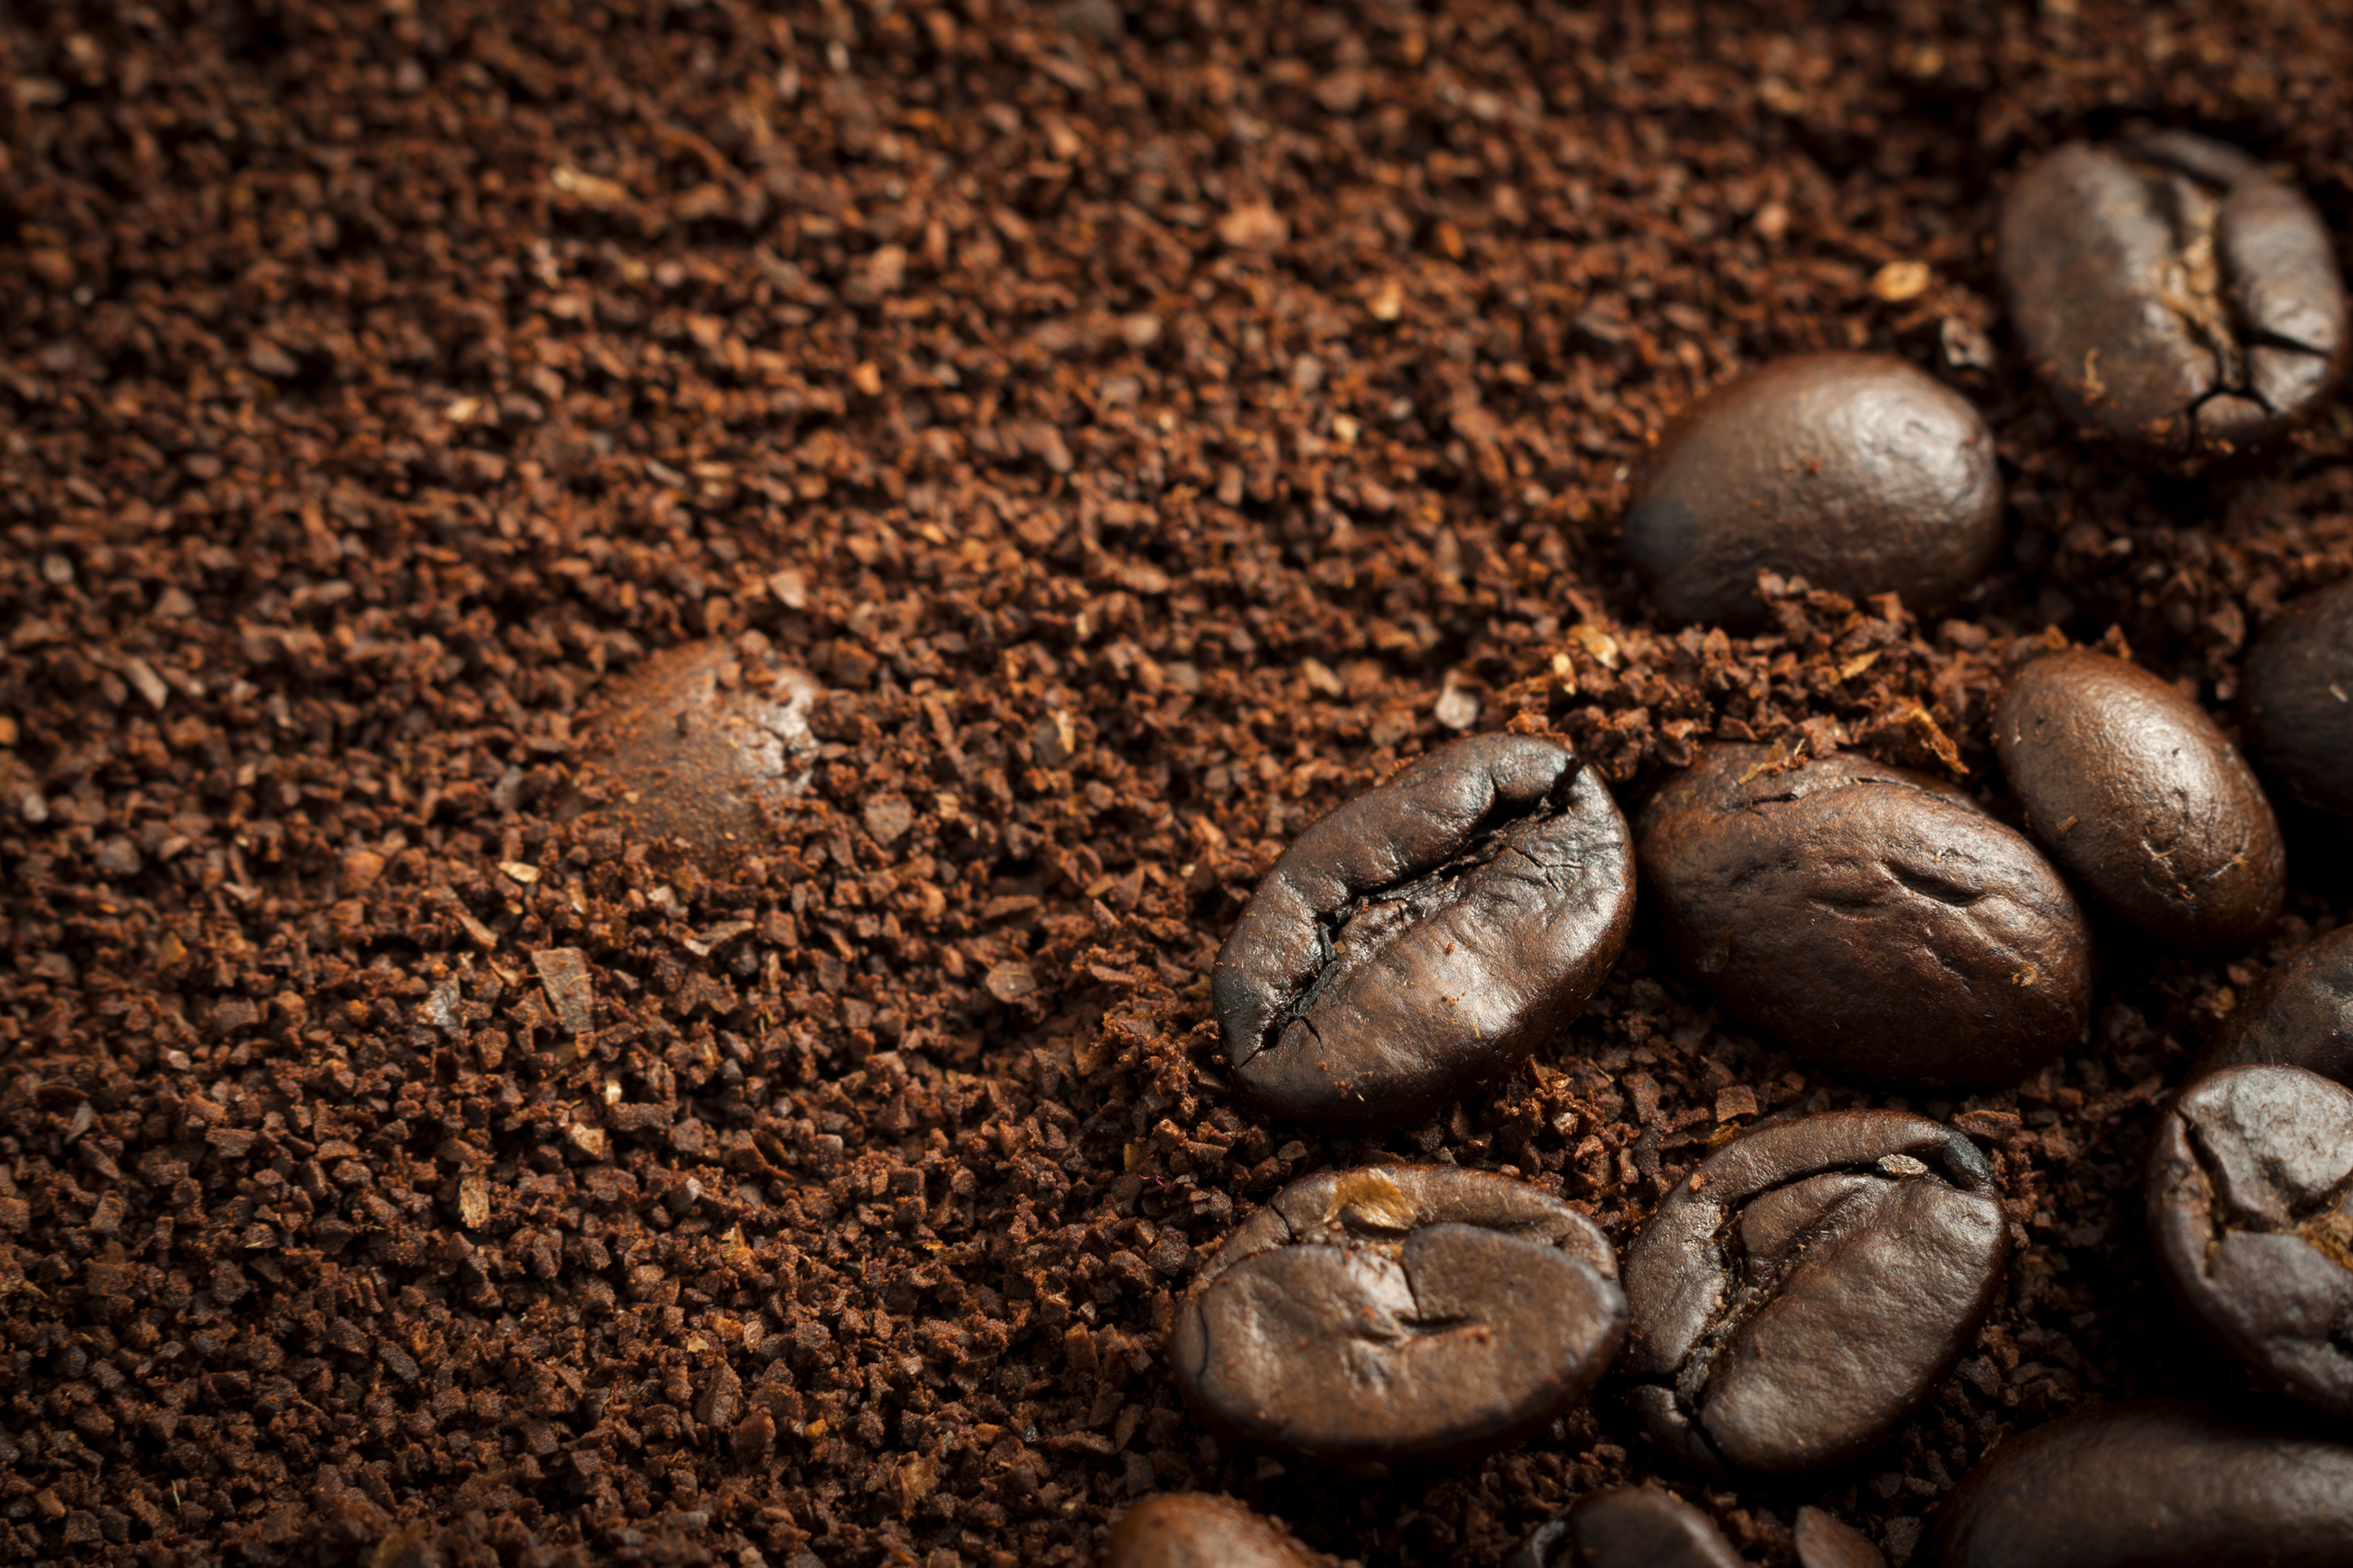 Ground Coffee Image